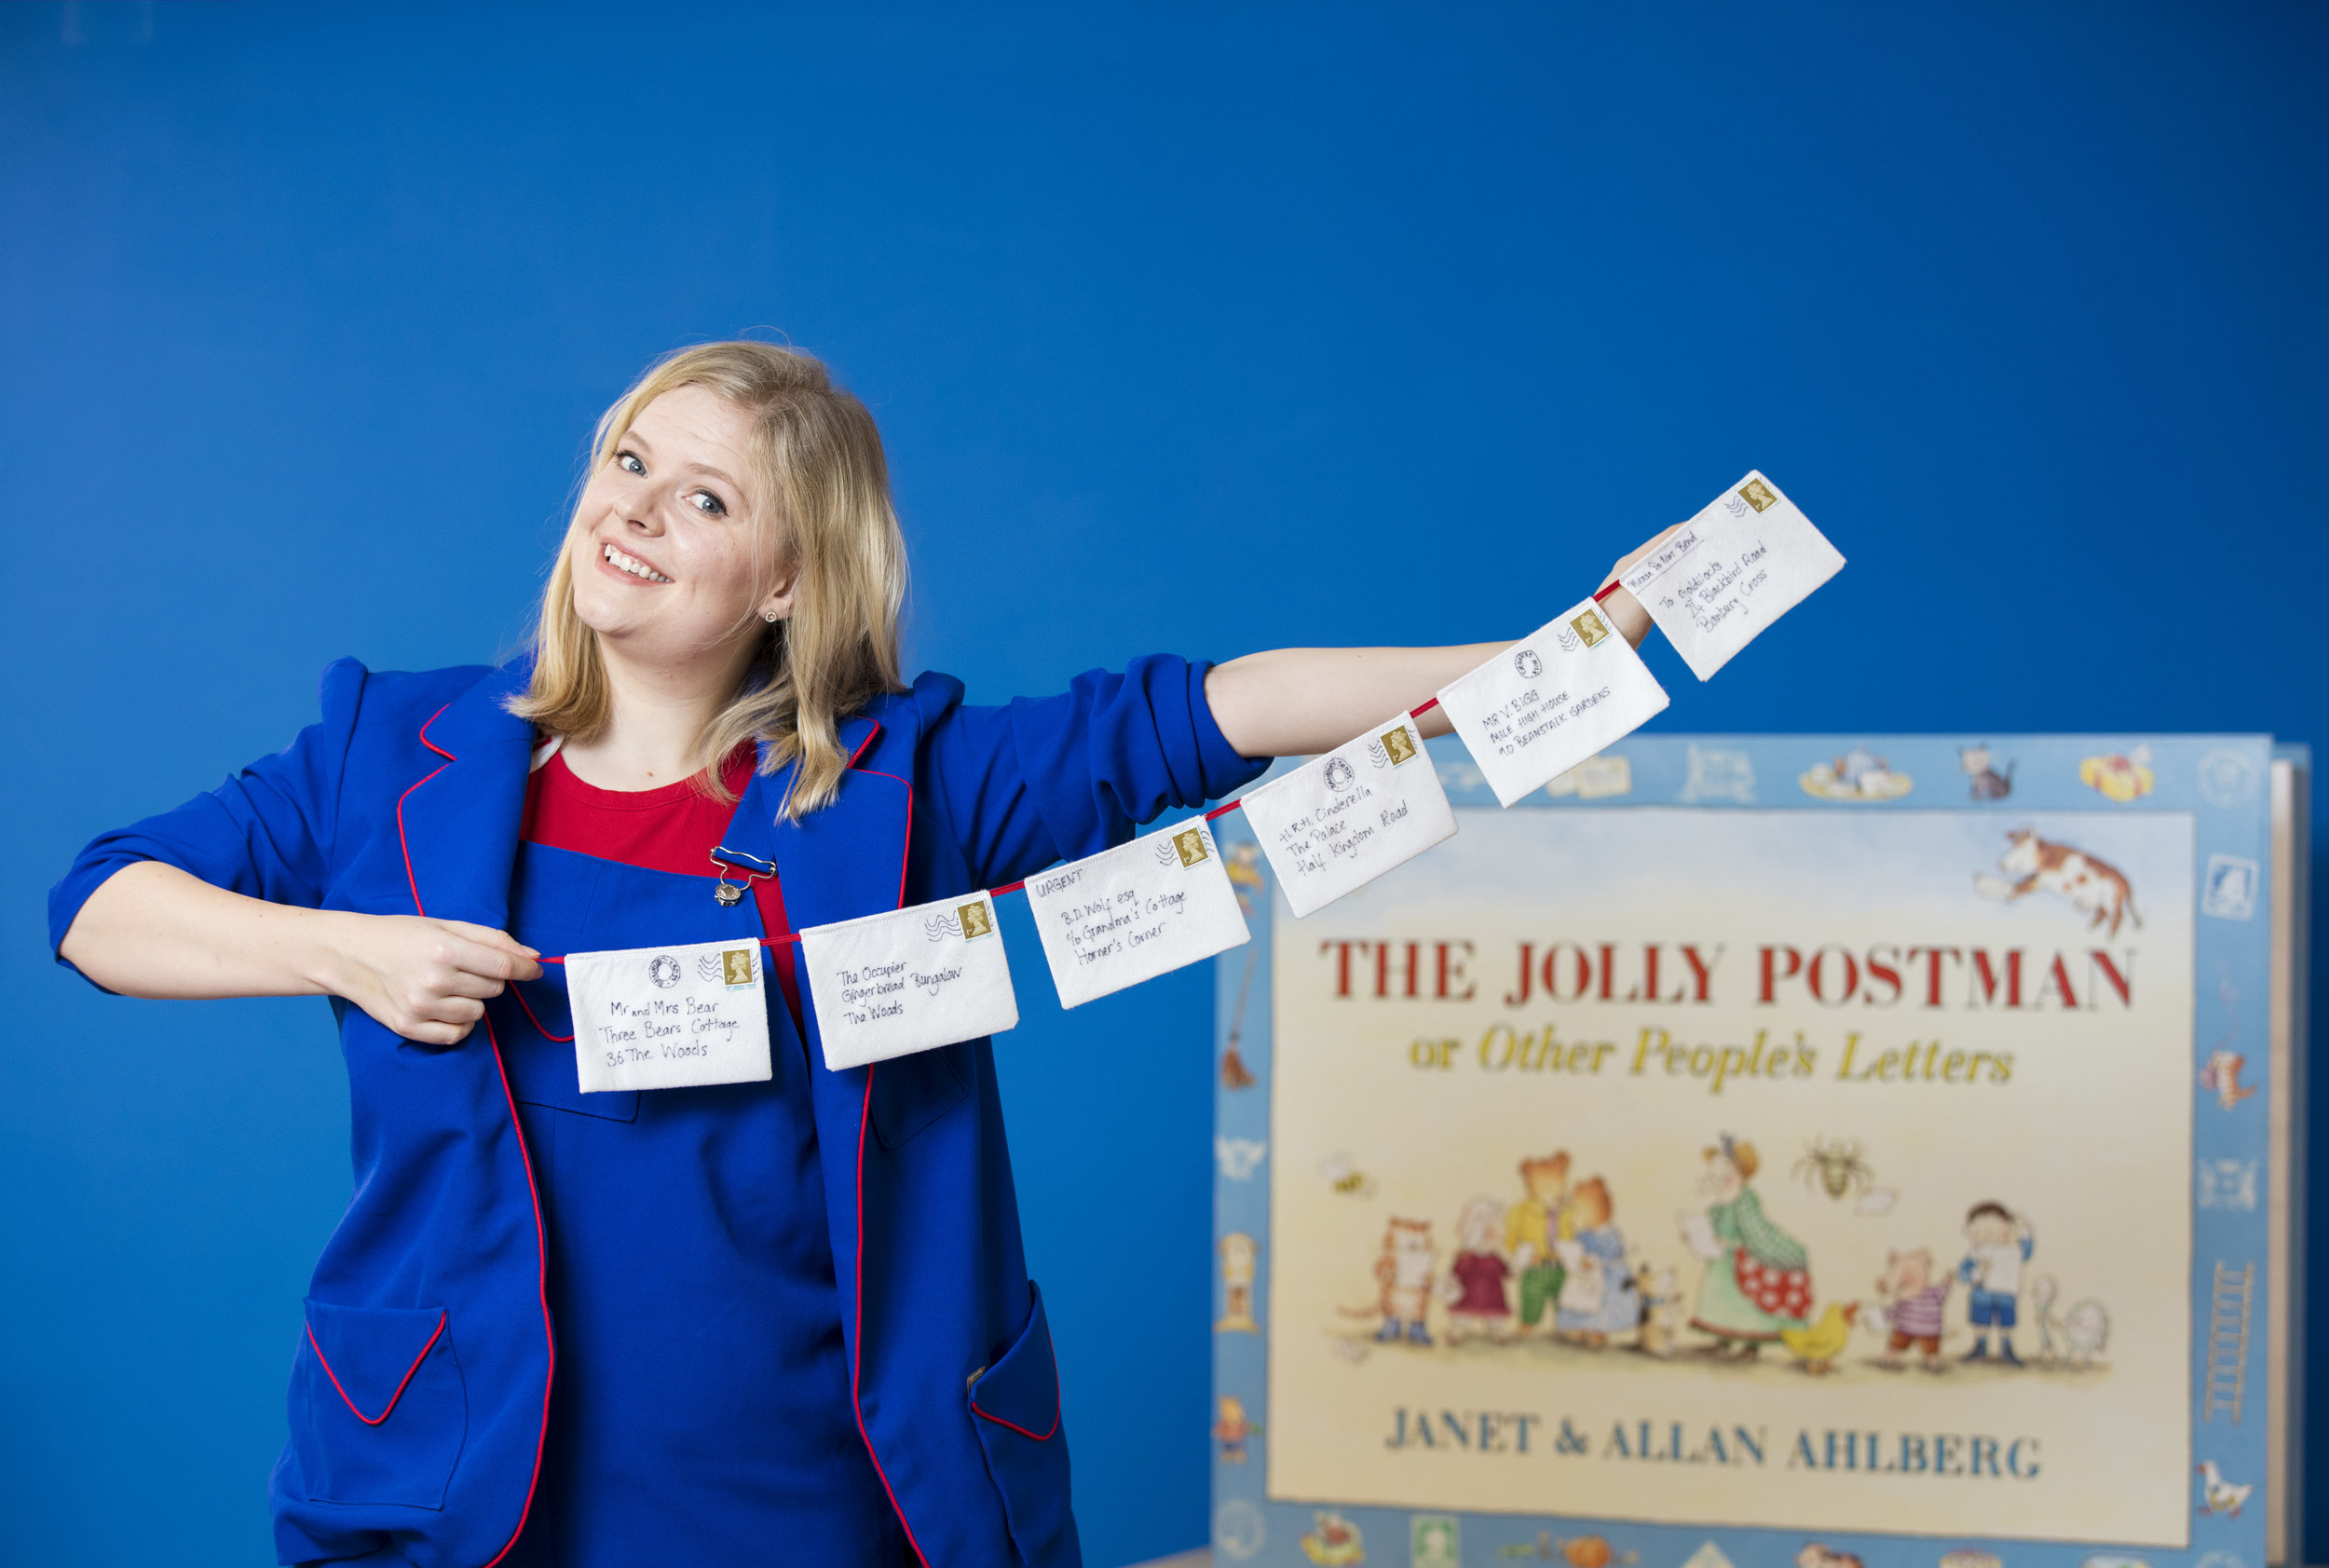 The Jolly Postman - The Postal Museum